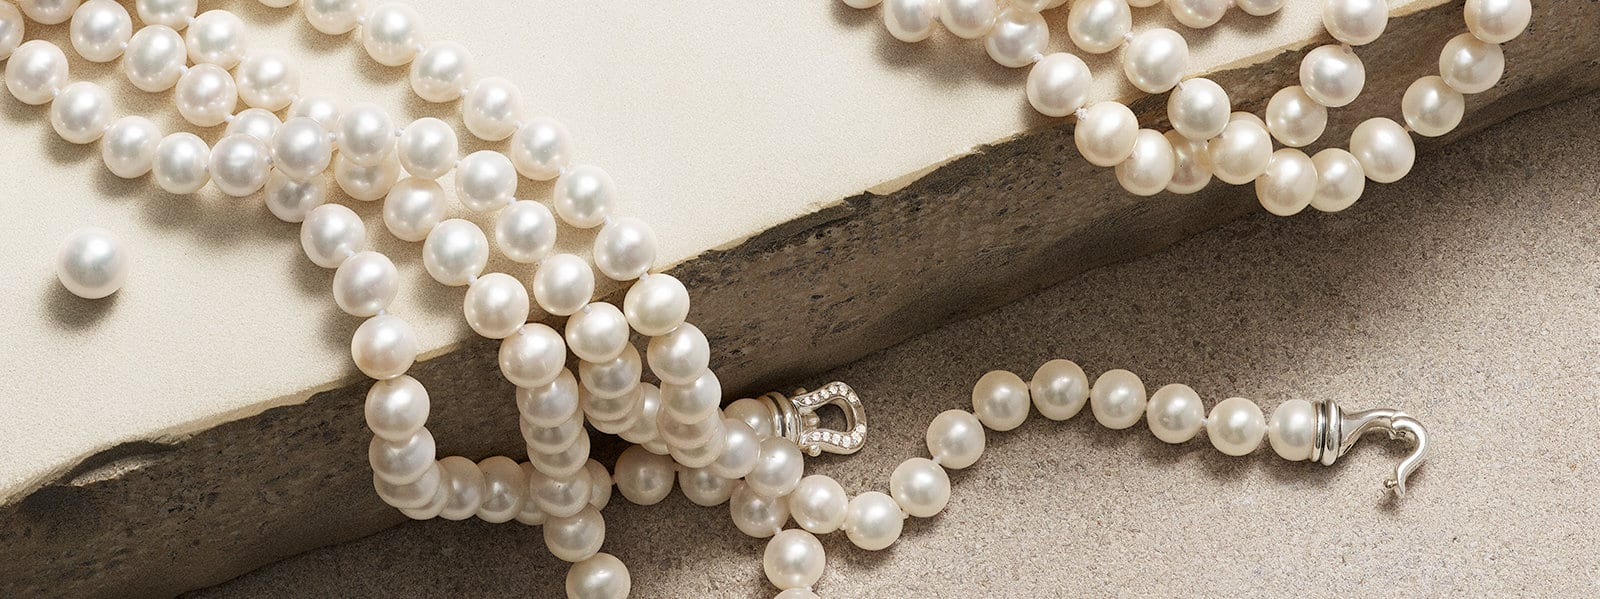 A pearl necklace with a diamond-encrusted sterling silver buckle on a stone.